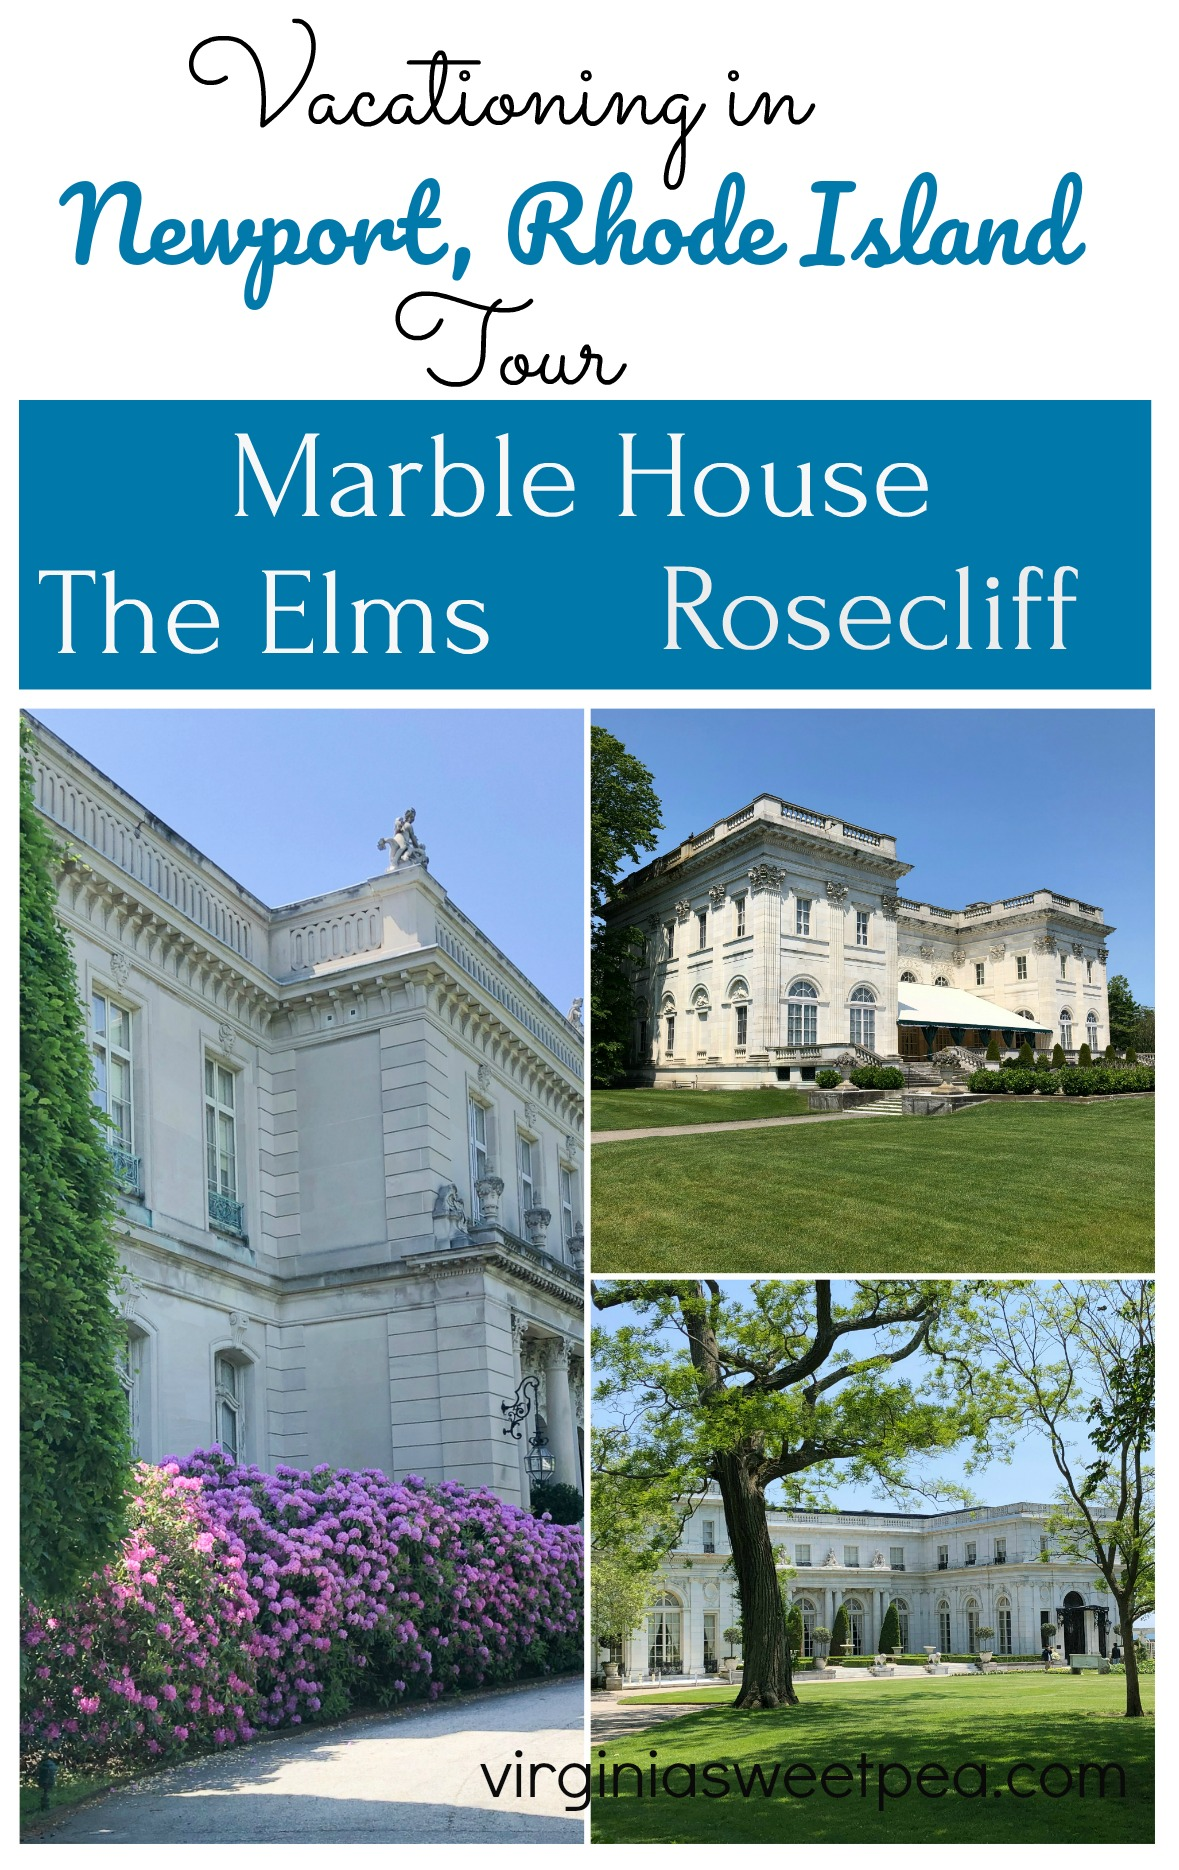 Vacationing in Newport, Rhode Island - Tour Marble House, Rosecliff, and The Elms via @spaula